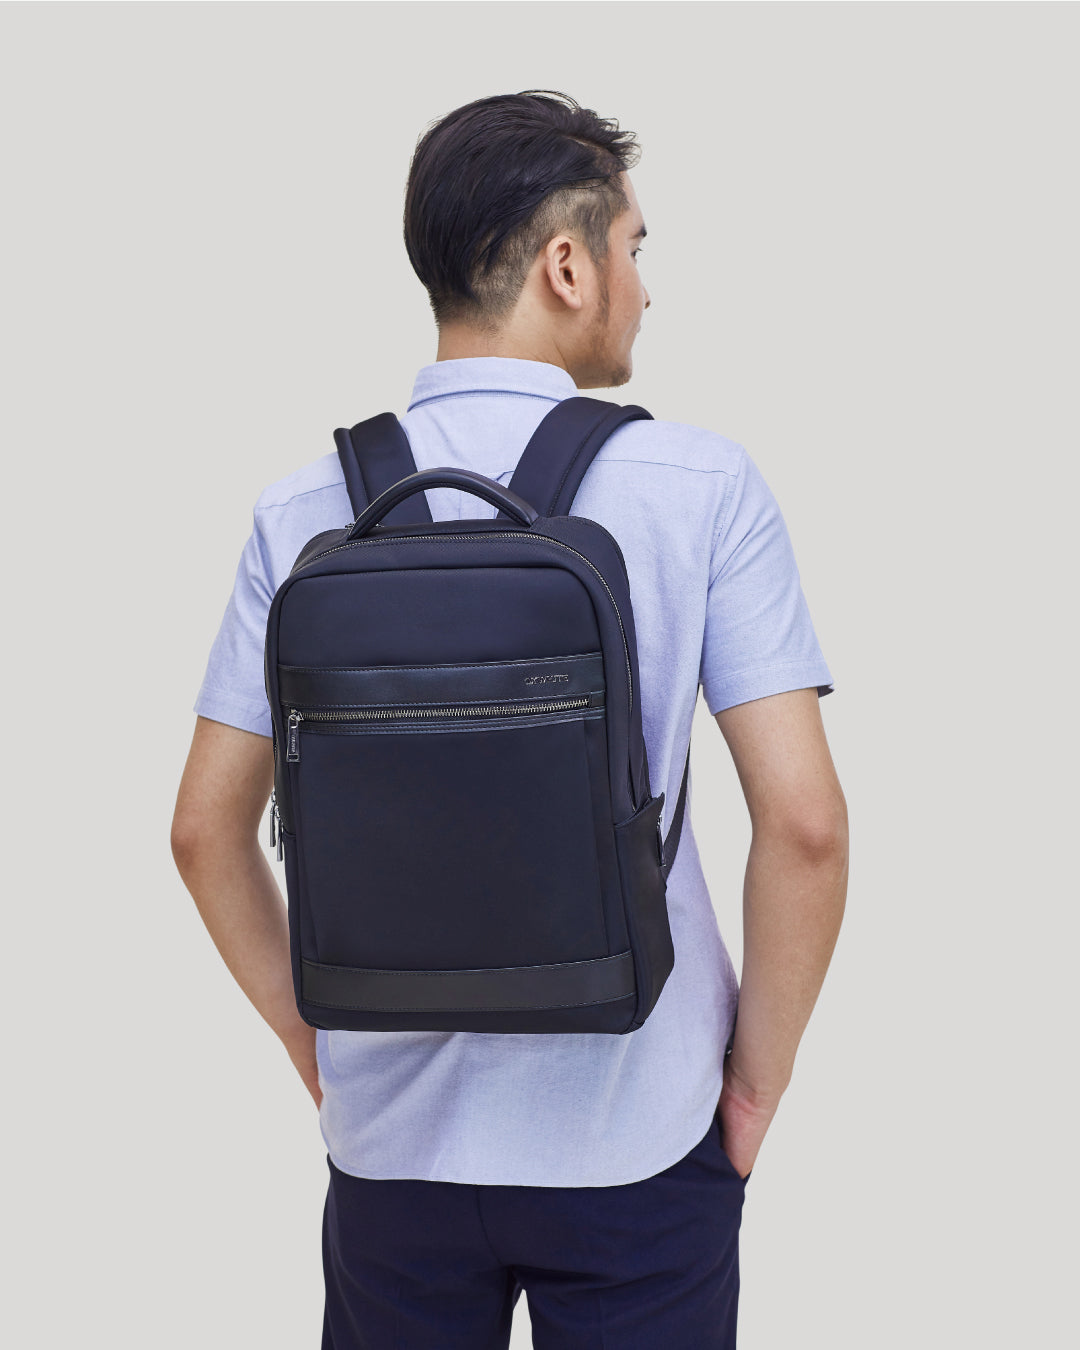 Ultralight Slim Laptop Backpack